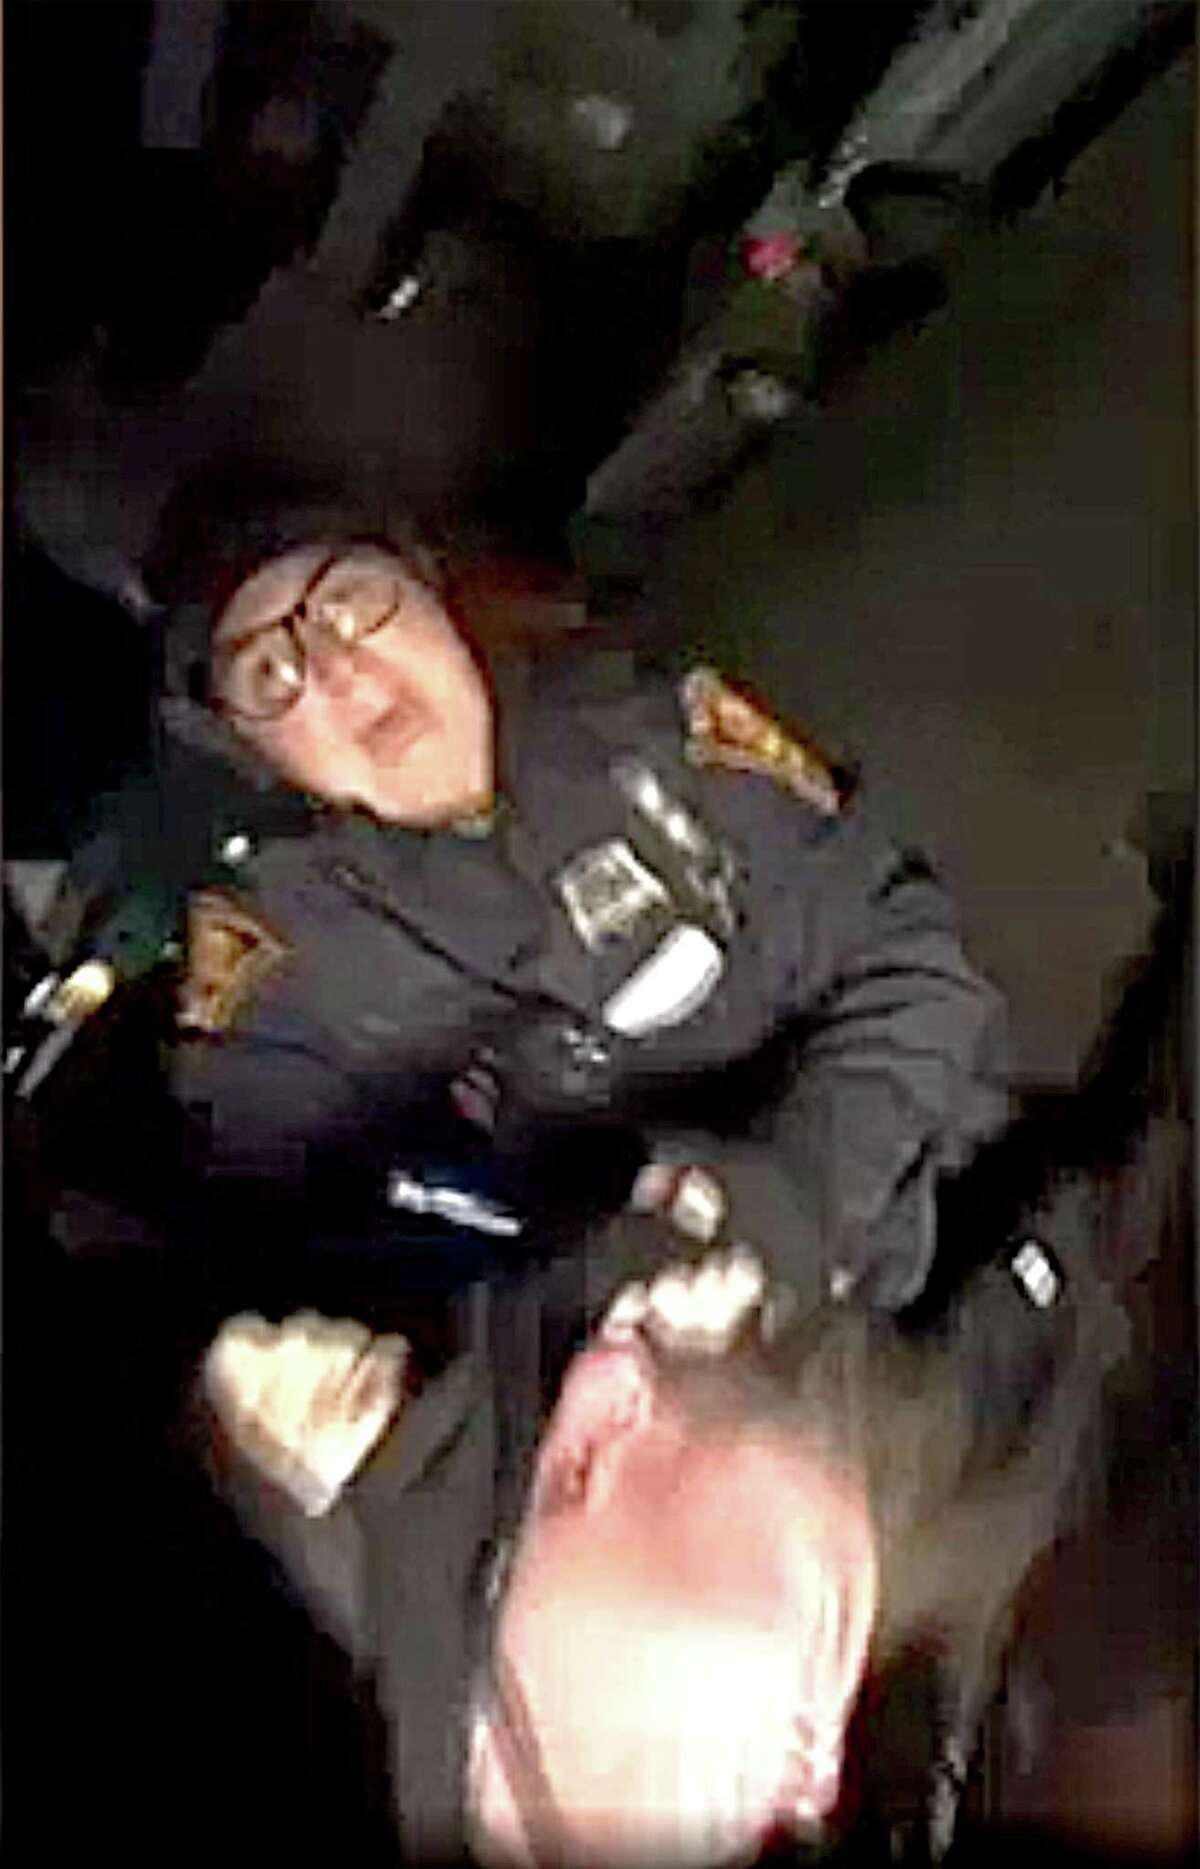 An image taken from a cell phone video shows Bridgeport Police Officer Christina Arroyo during the arrest of Aaron Kearney, 18, of Bridgeport following a traffic accident Friday, Nov. 10, 2017.